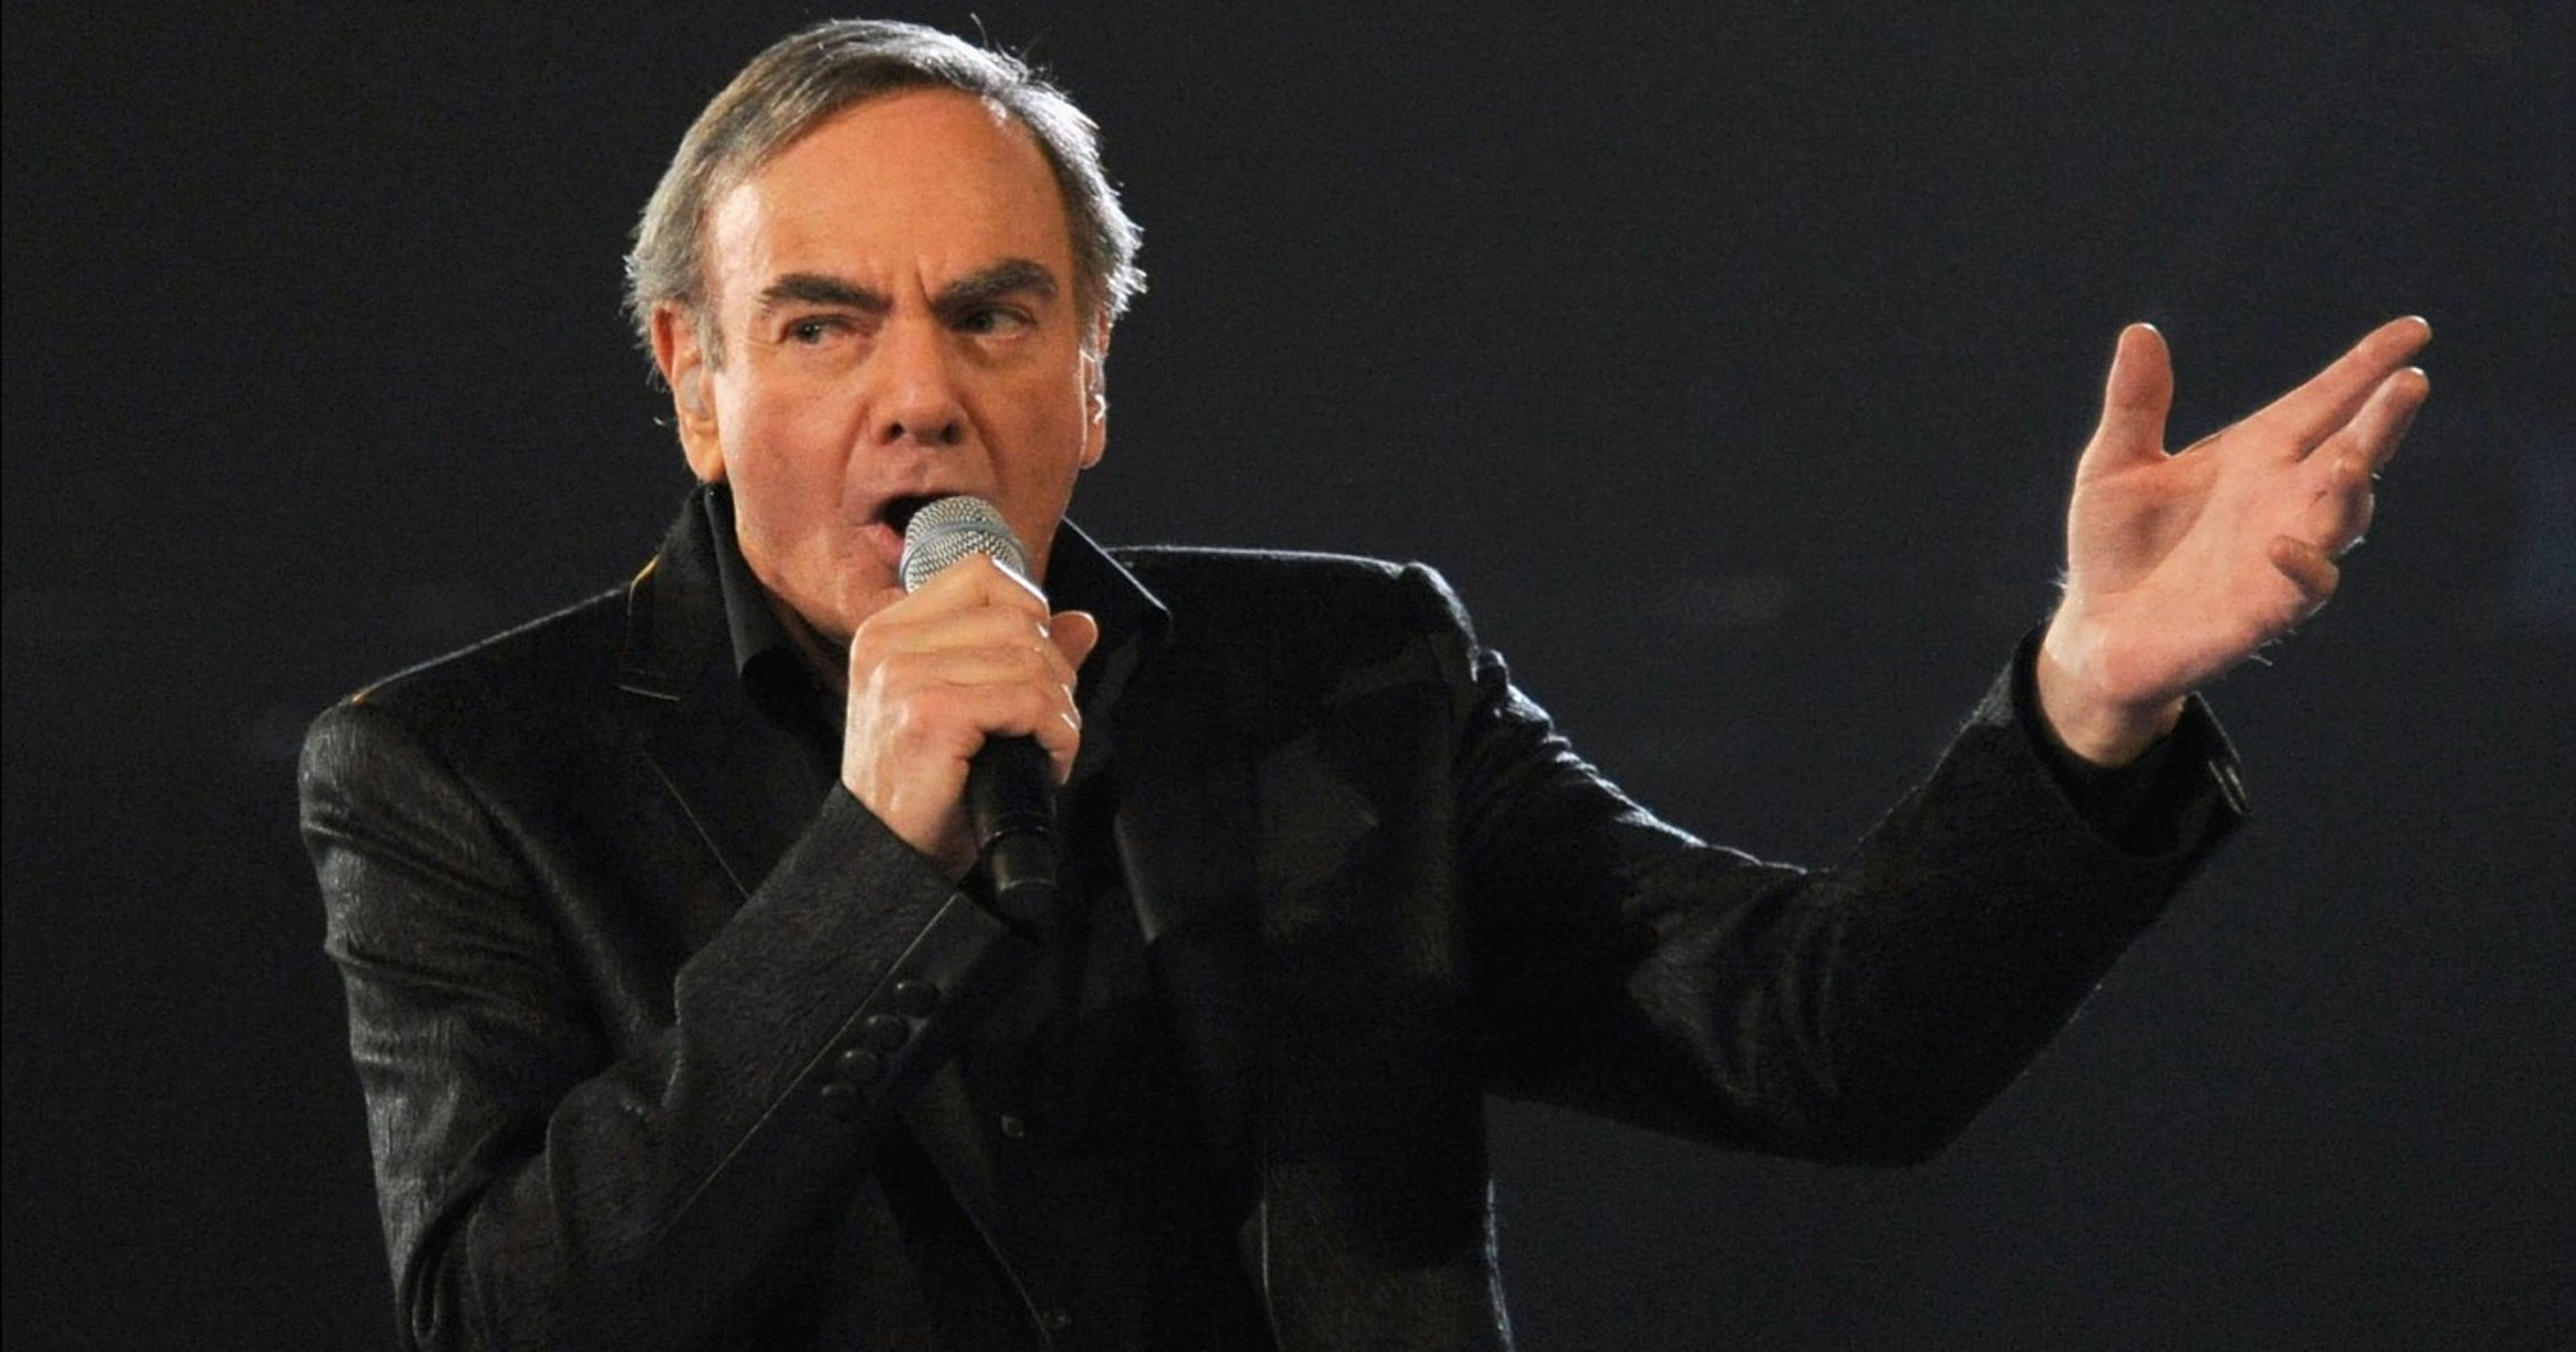 Neil Diamond: Residency is possible, even with Parkinson's Disease